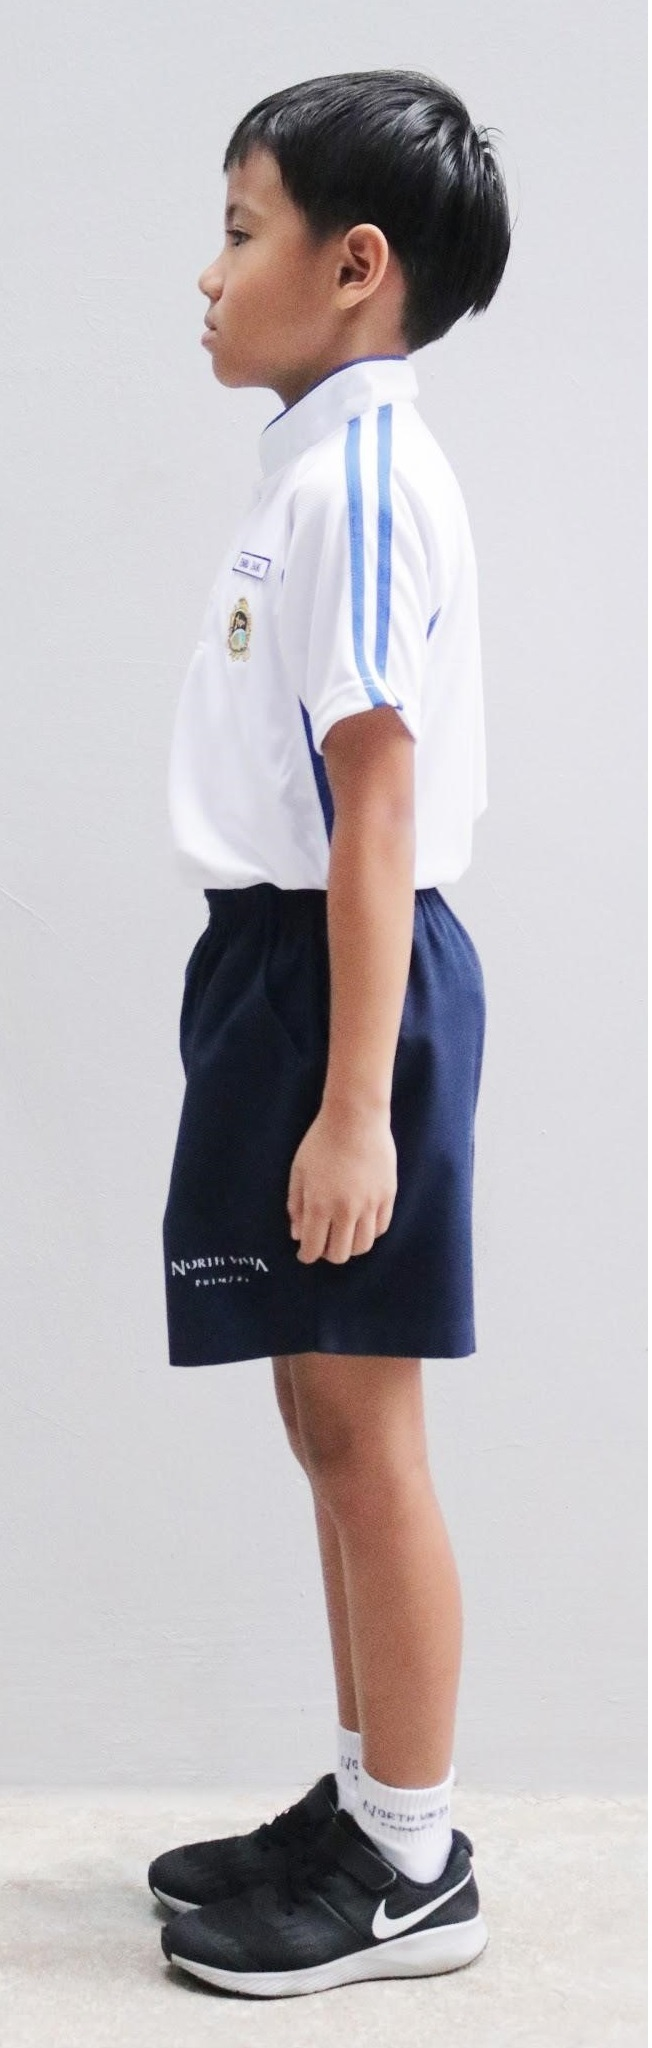 Boys Attire PE (side).jpg